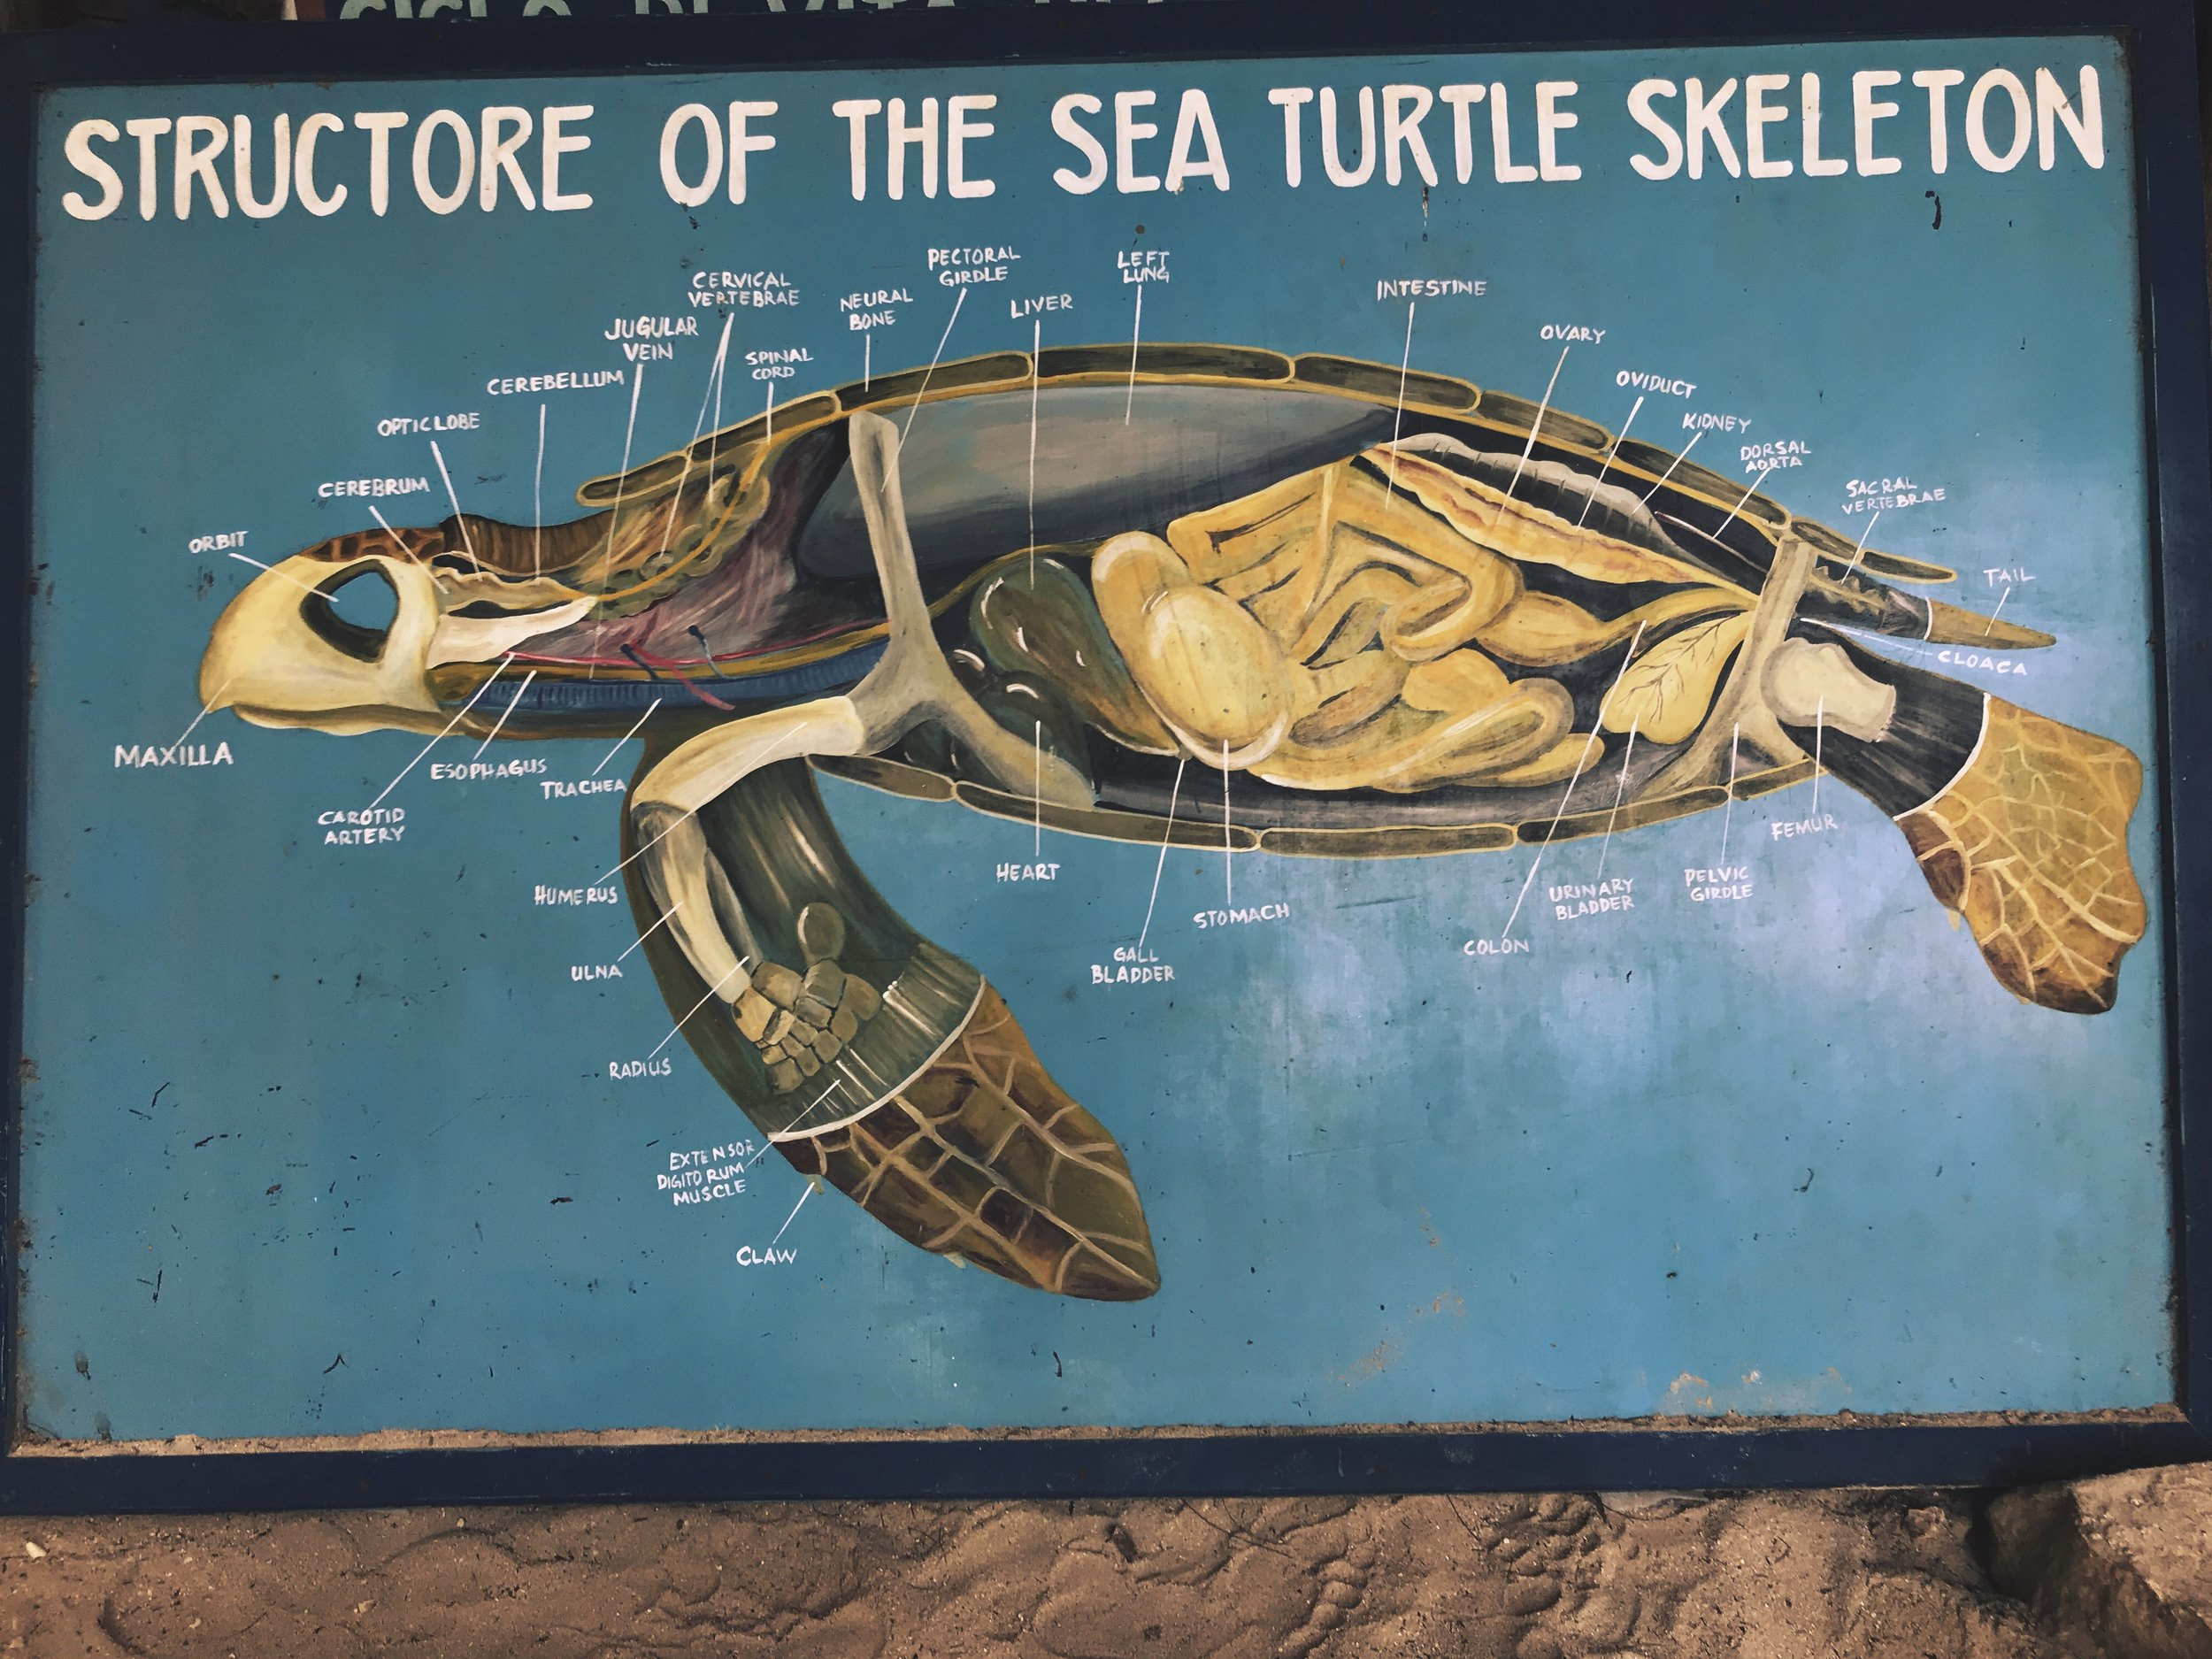 The anatomy of a sea turtle